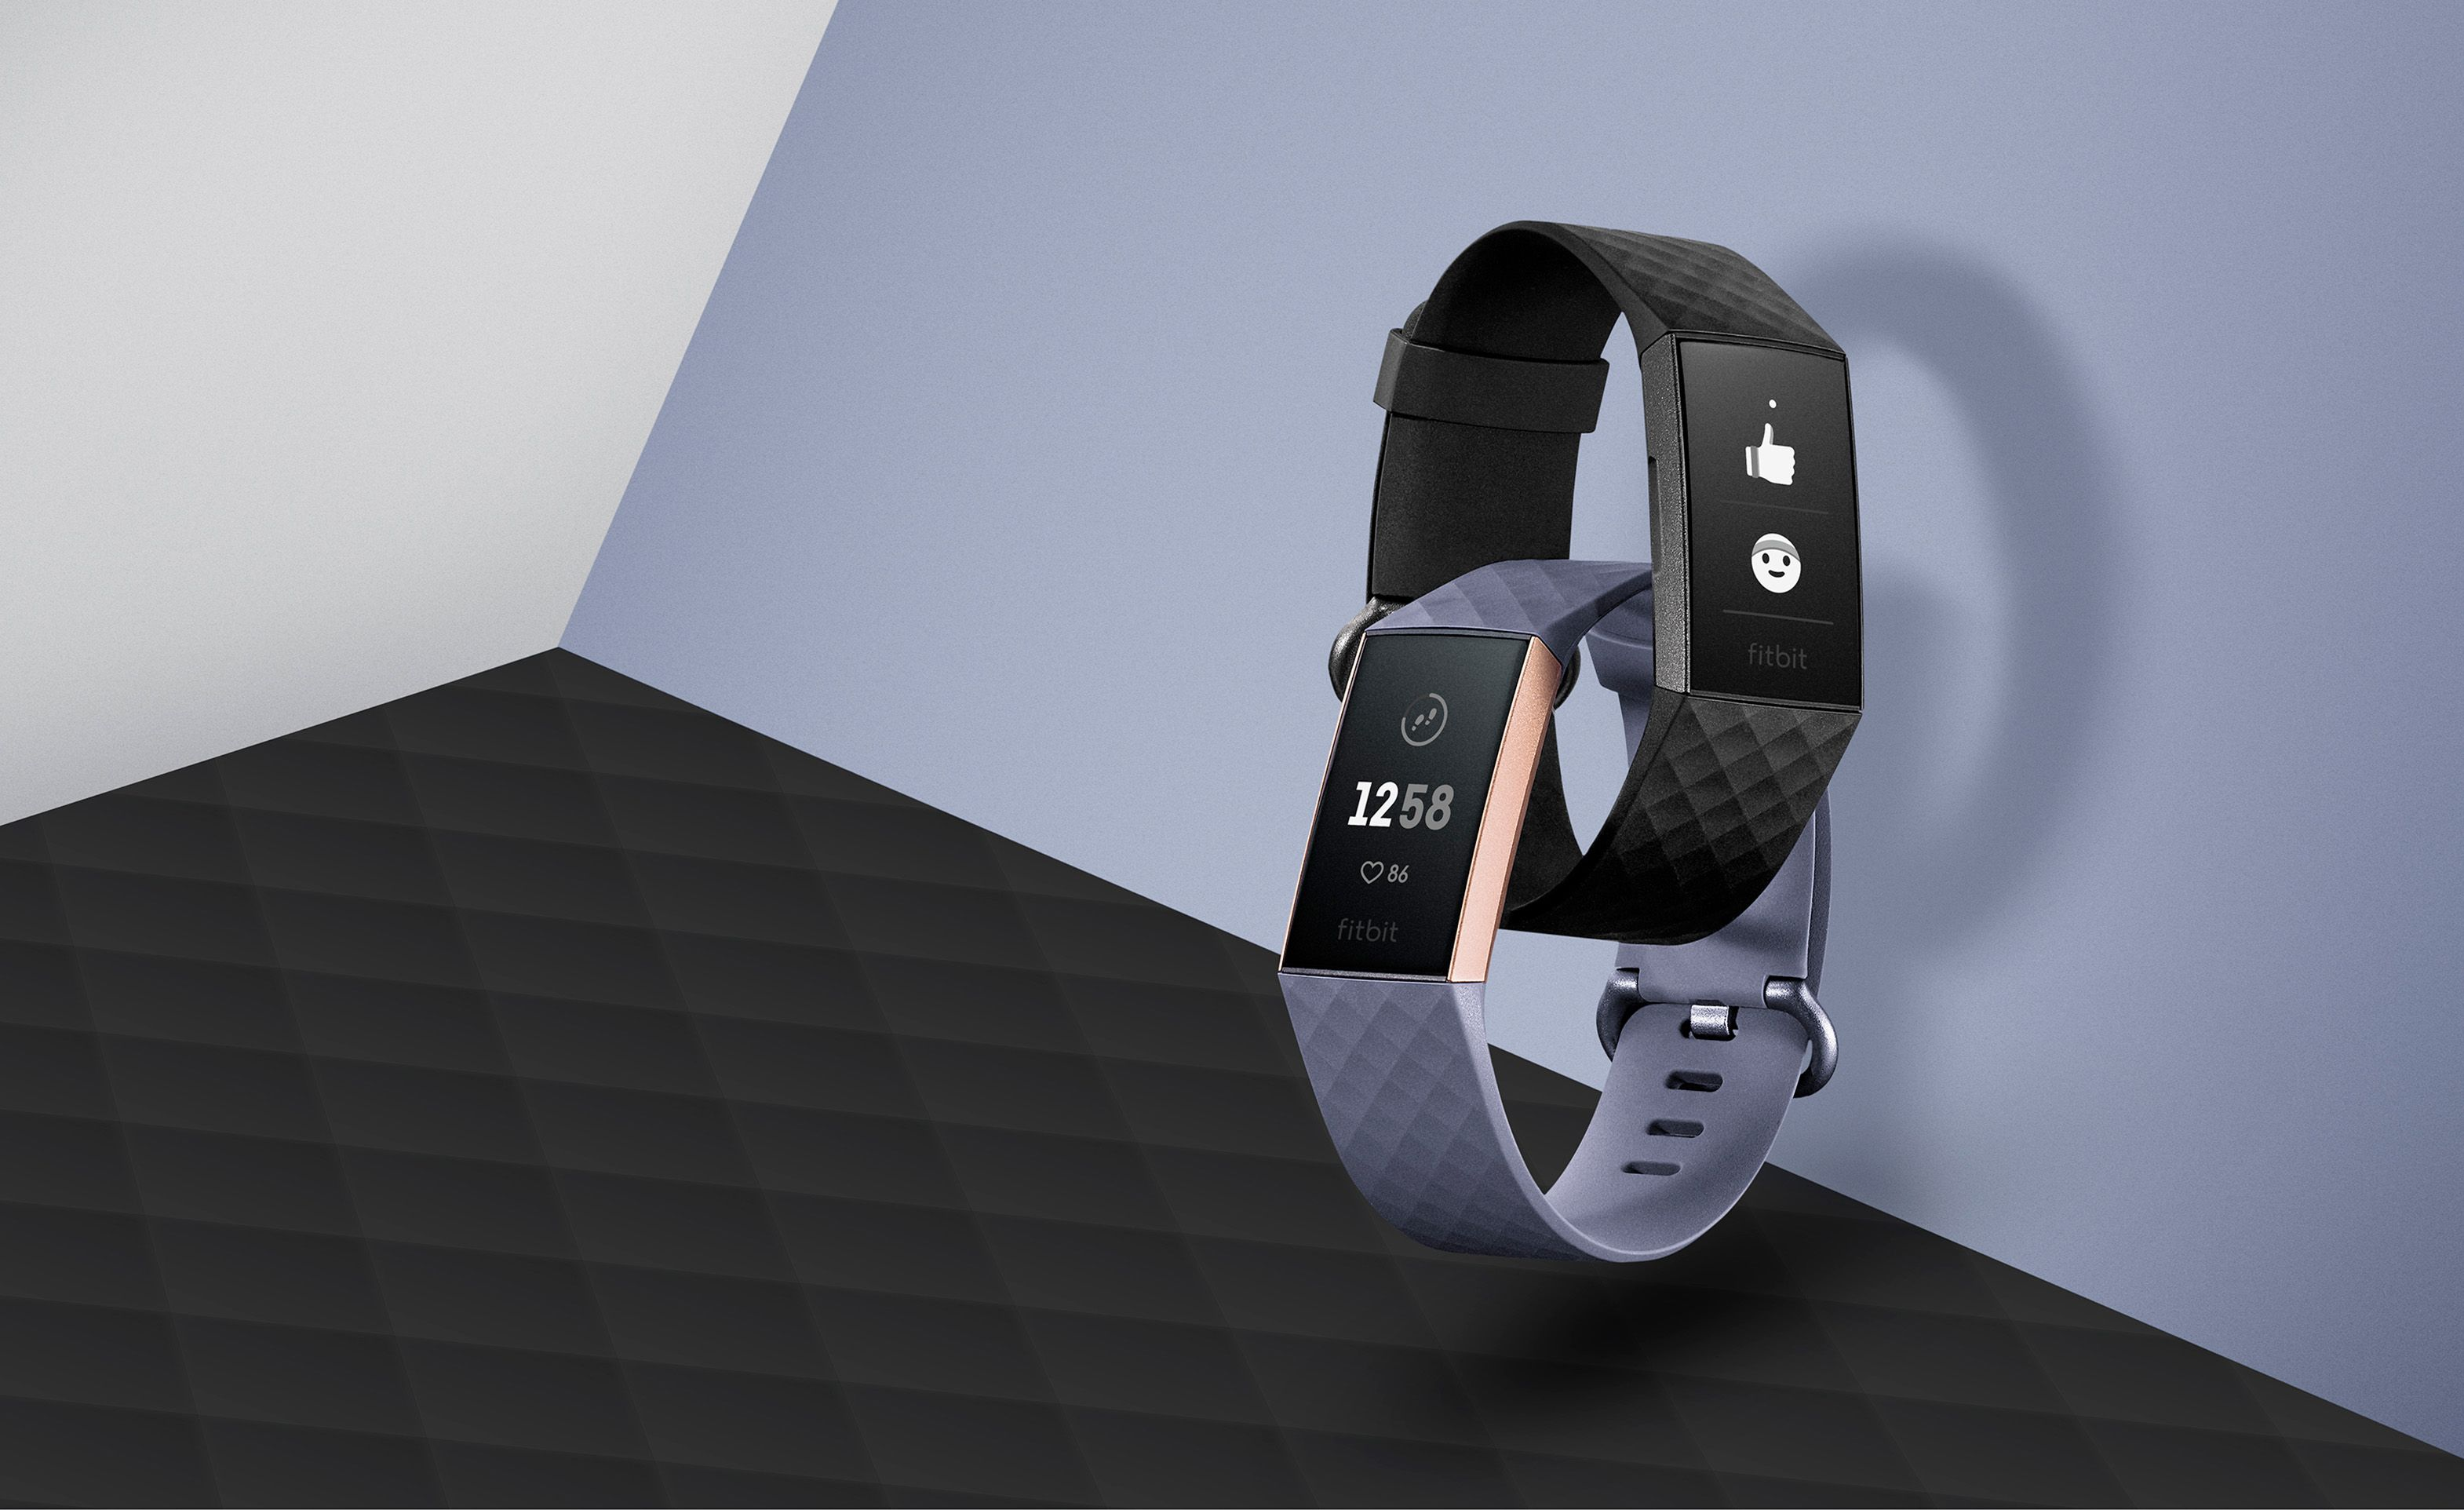 Which of the latest fitness trackers would best suit your